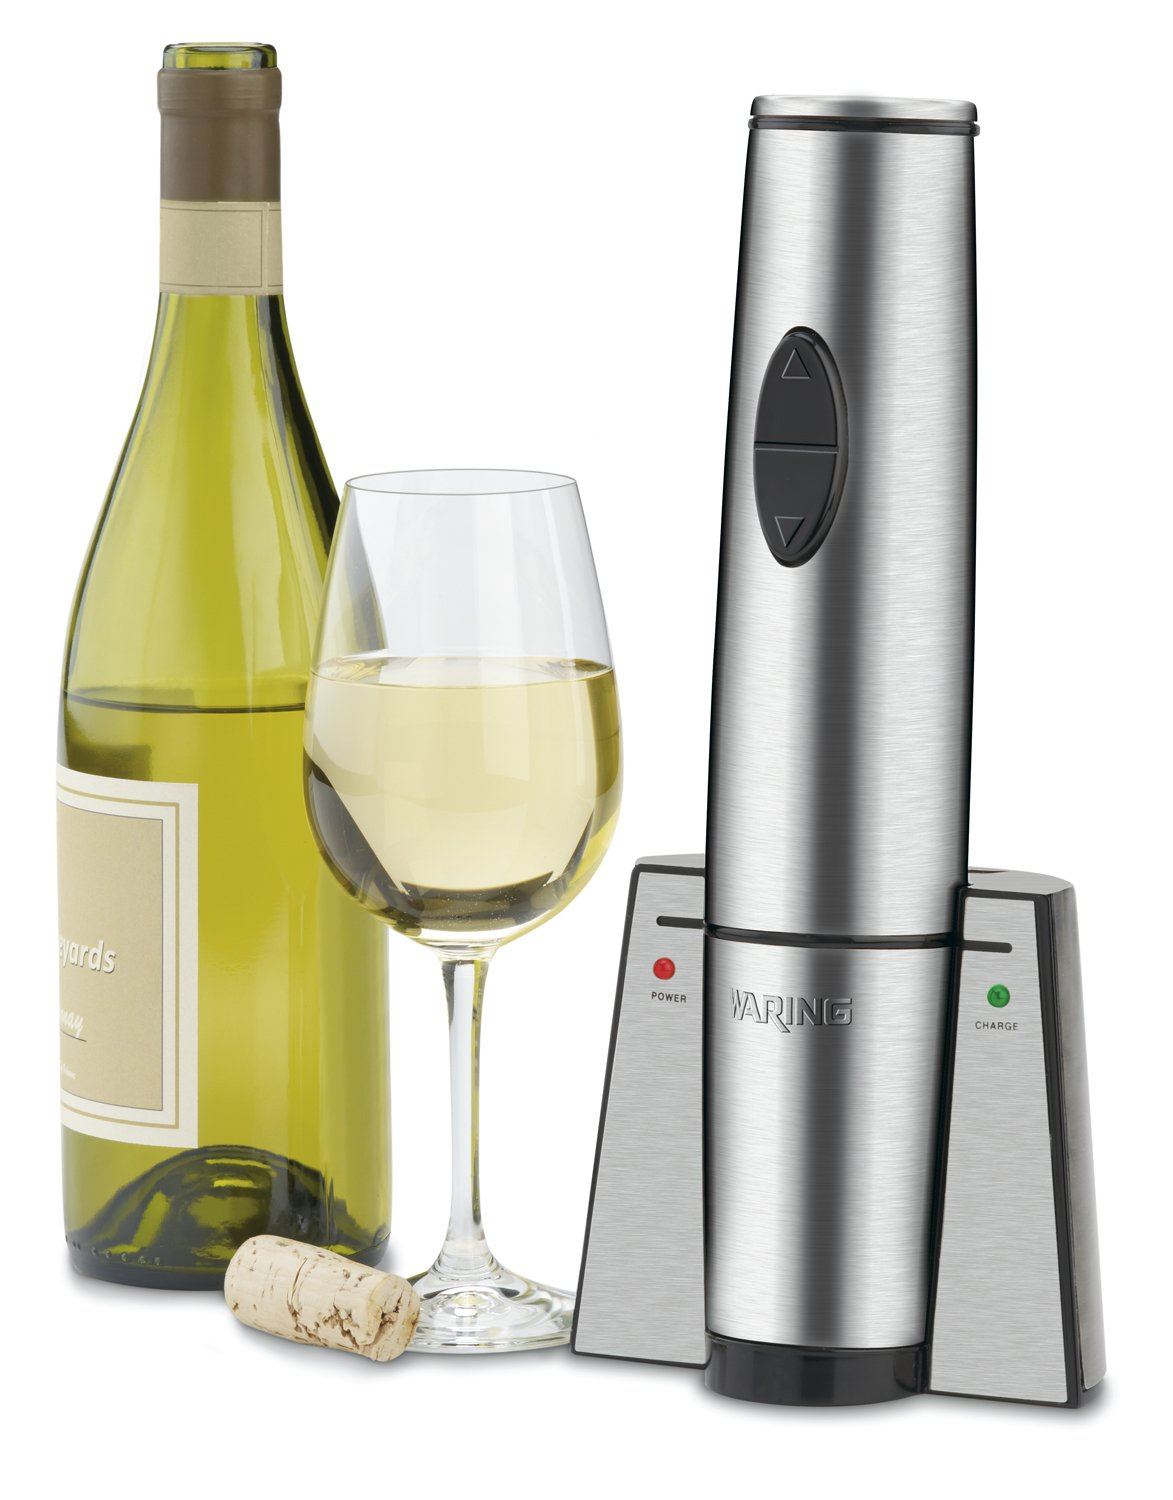 Waring Commercial WWO120 Portable Electric Wine Bottle Opener with Recharging Station by Waring (Image #6)